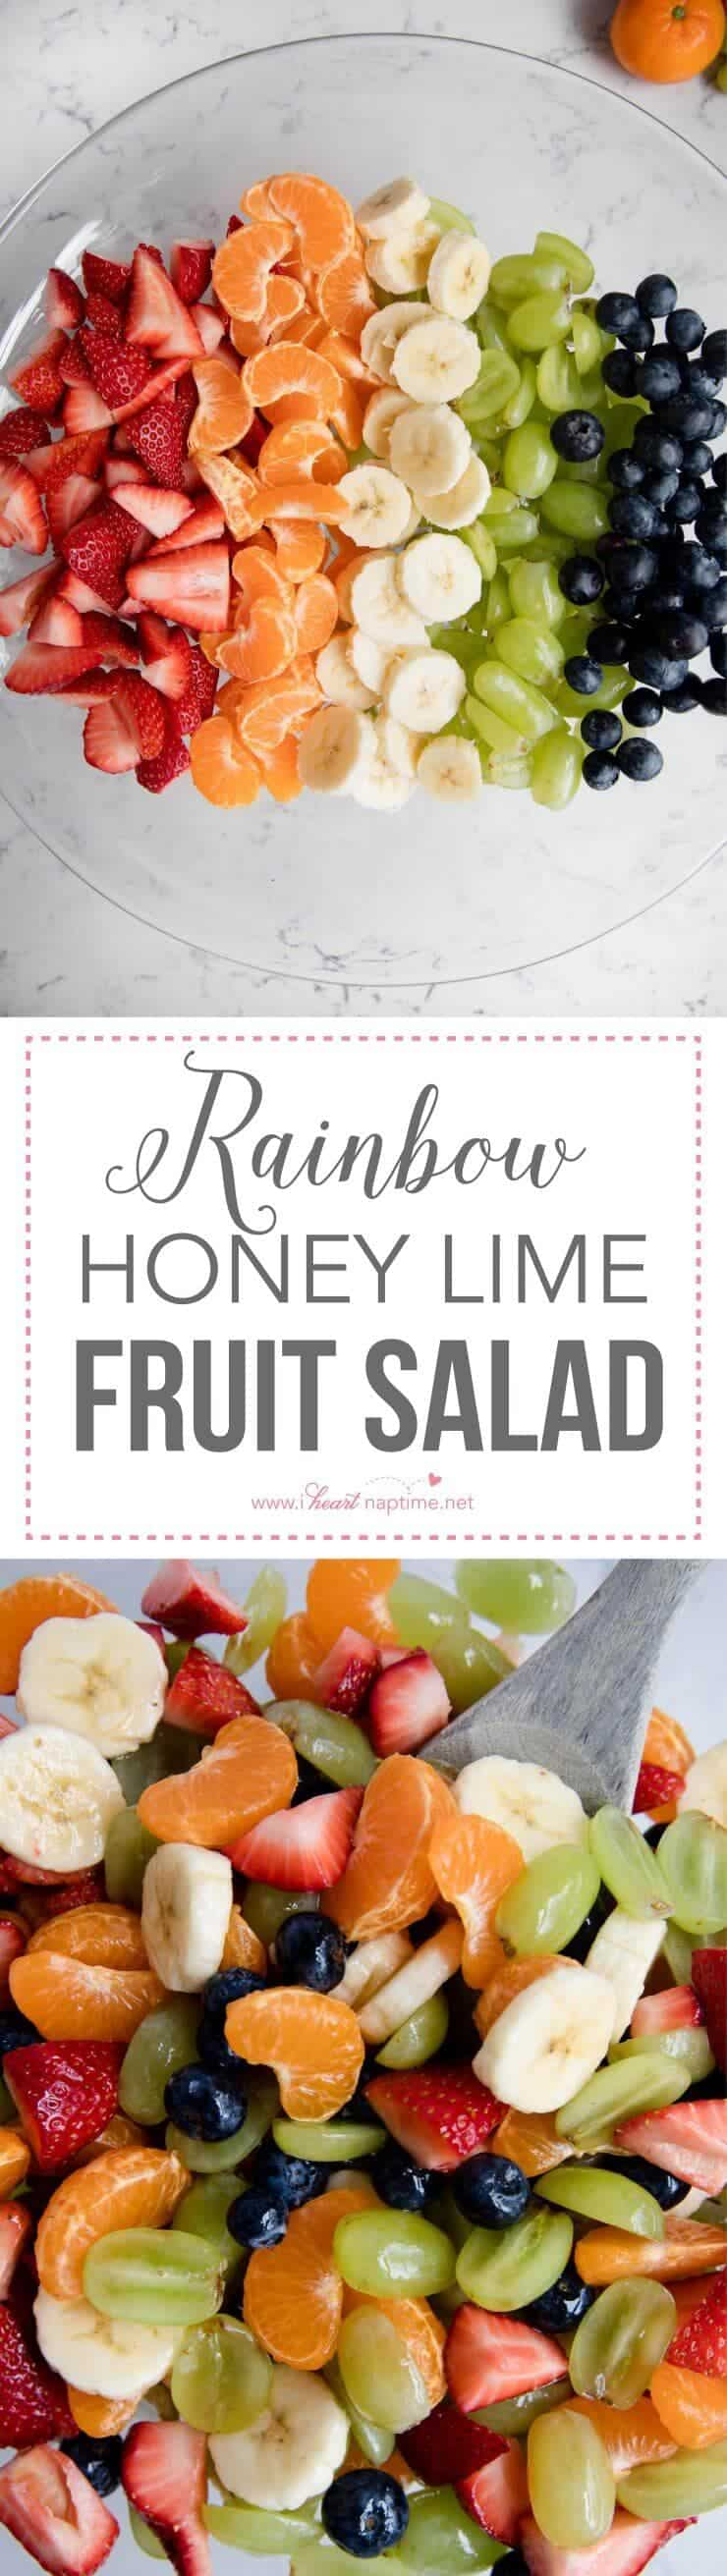 Rainbow Honey Lime Fruit Salad ...filled with fresh strawberries, oranges, bananas, grapes and blueberries. Topped with a honey lime glaze. This fruit salad is very easy and very tasty!